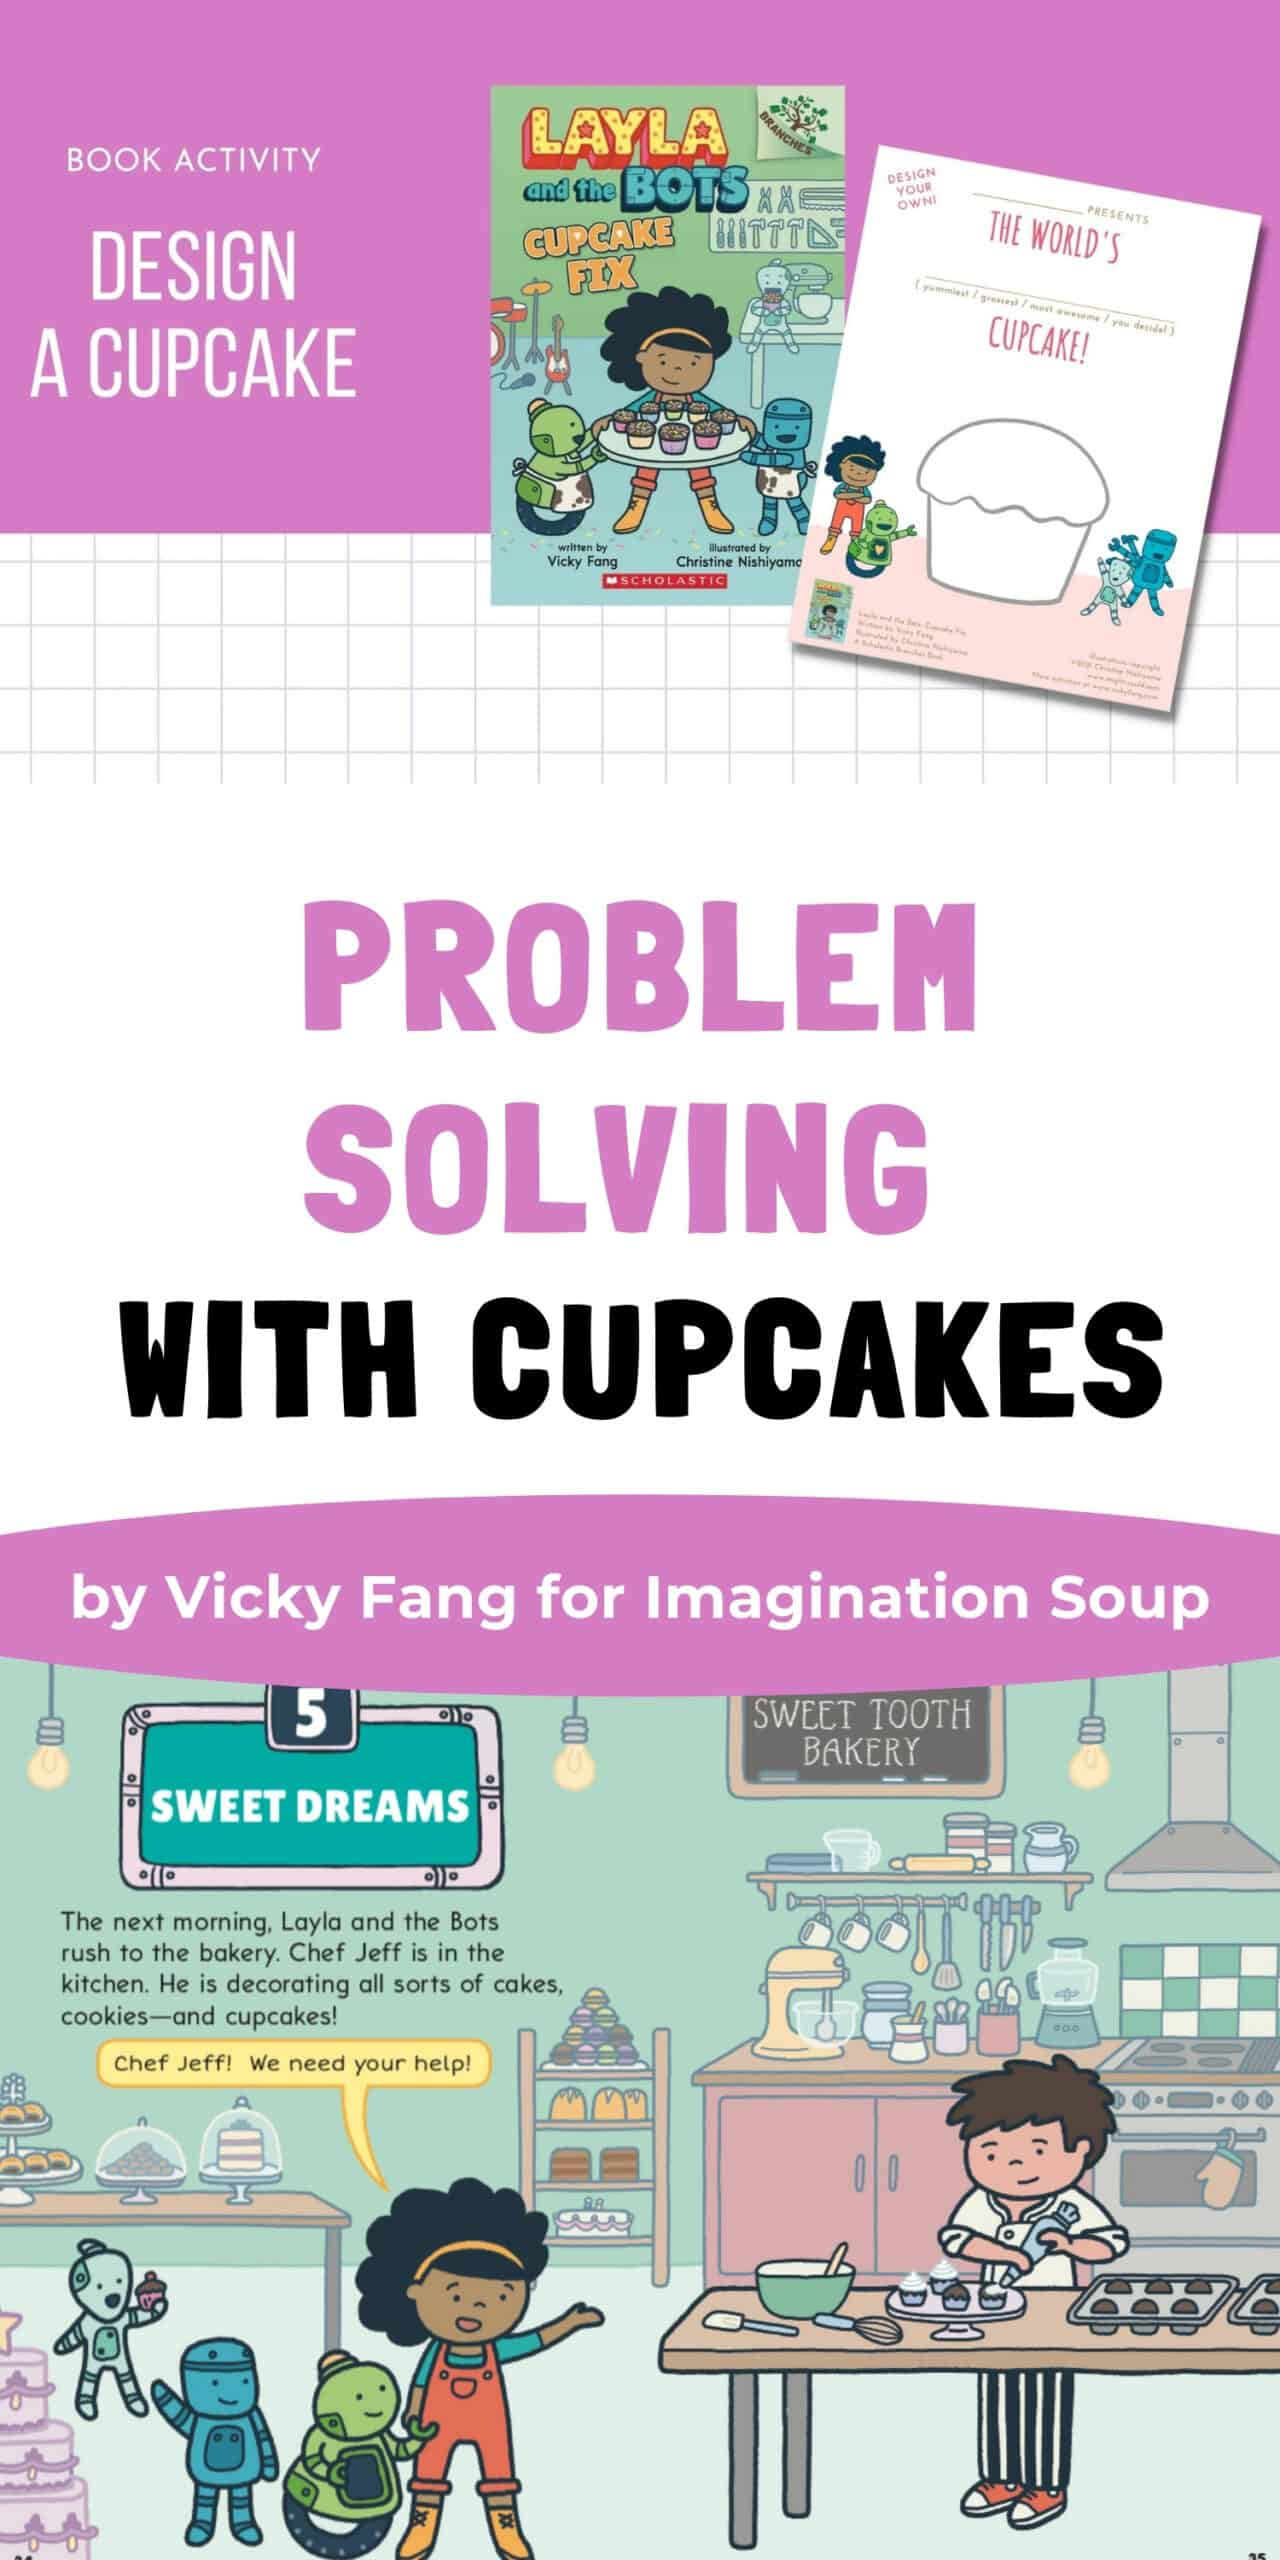 Problem-Solving with Cupcakes by Vicky Fang, author of Layla and the Bots